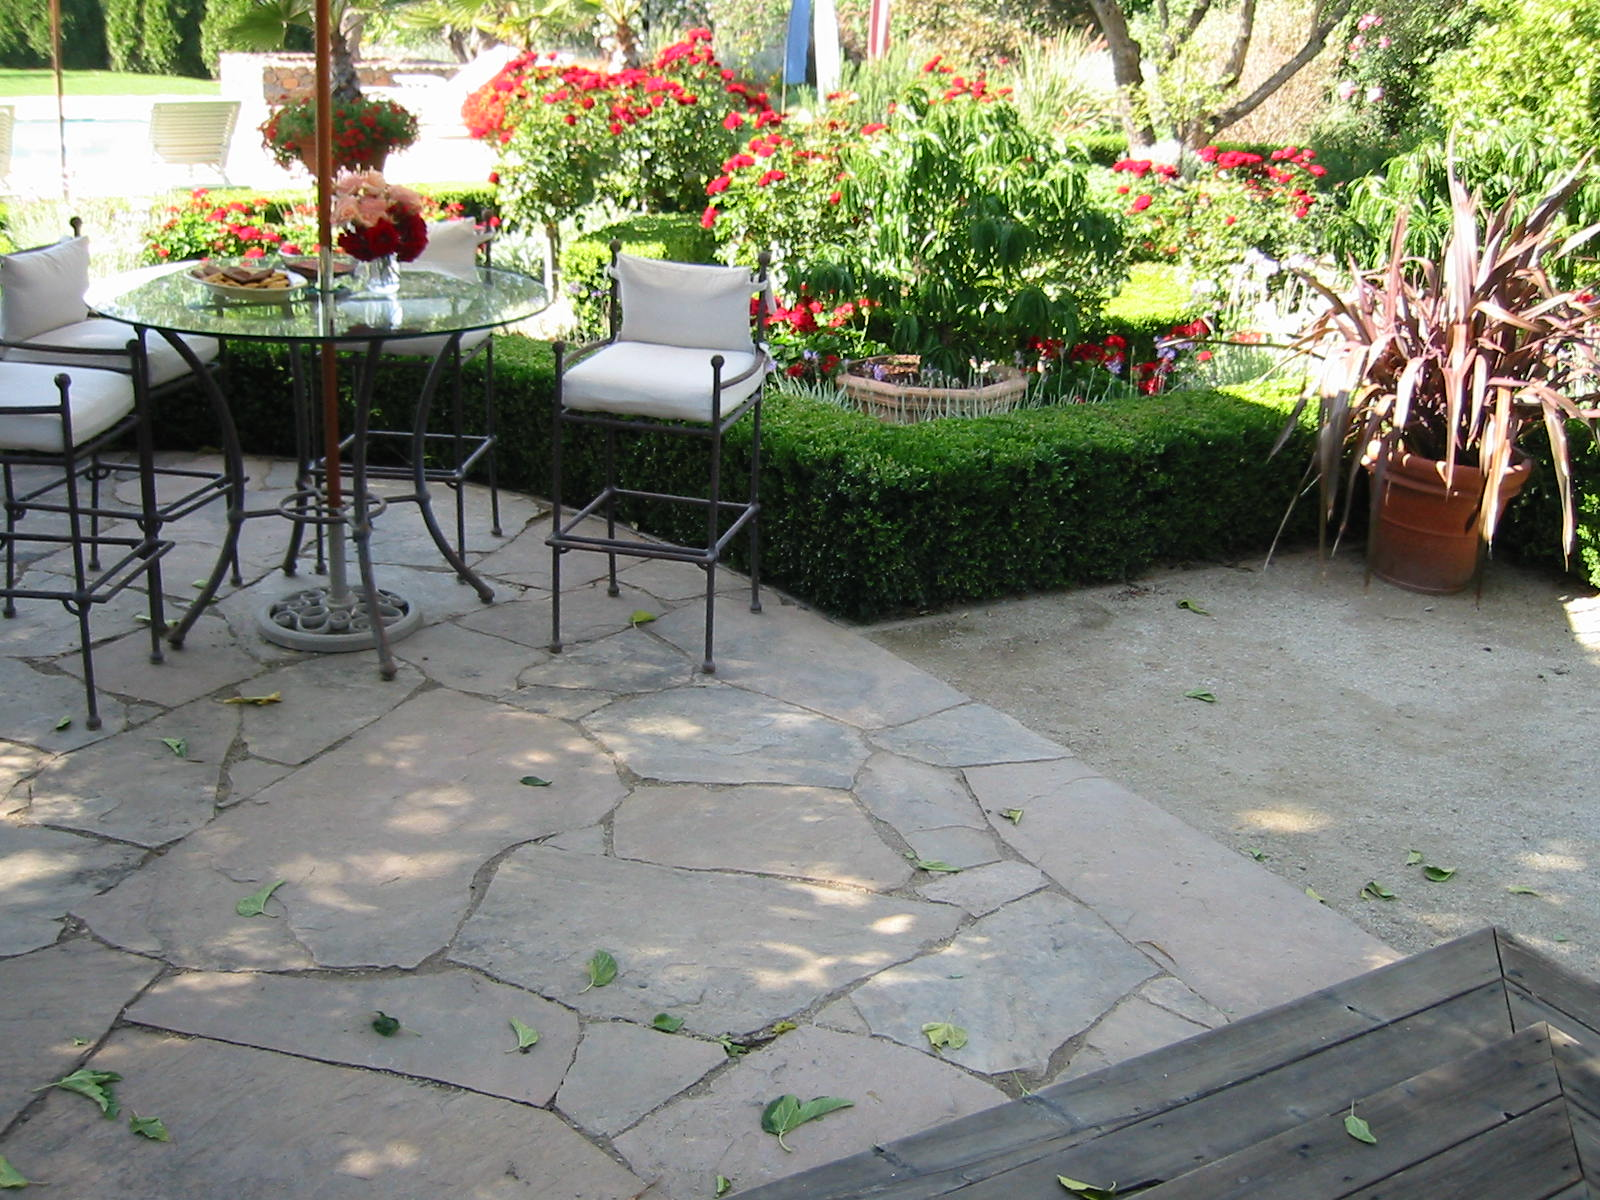 Decomposed Granite Paths and Patios | The Human Footprint on Decomposed Granite Backyard Ideas id=14964